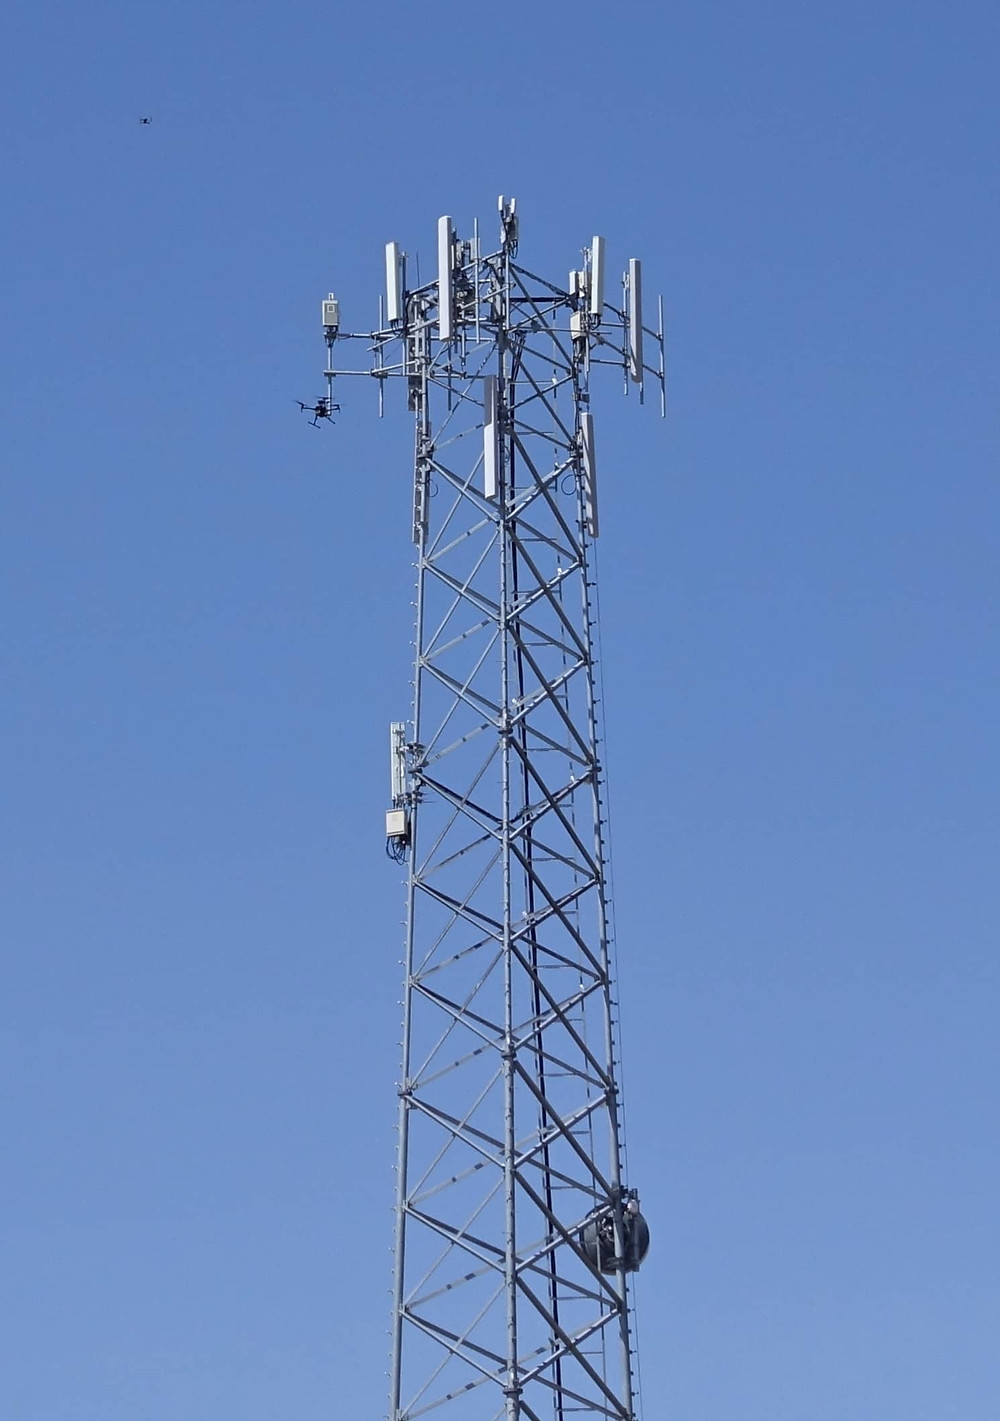 Cellular tower interference makes wifi slow and hard to fix